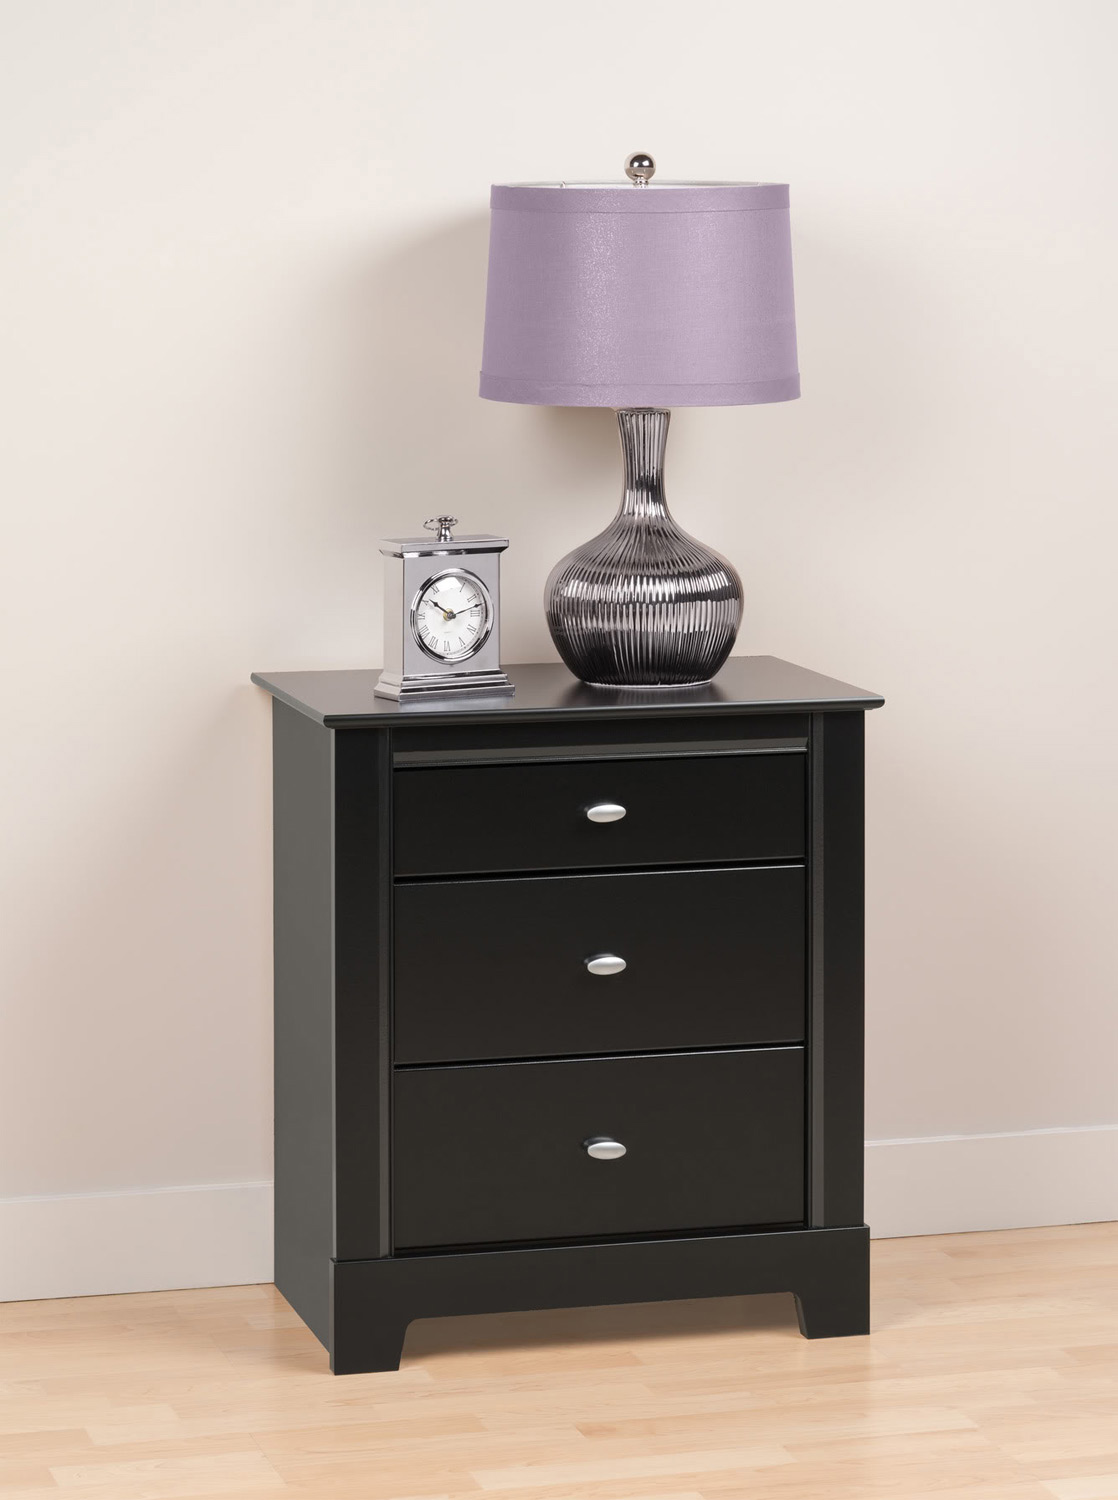 Prepac Kallisto 3 Drawer Night Stand - Black